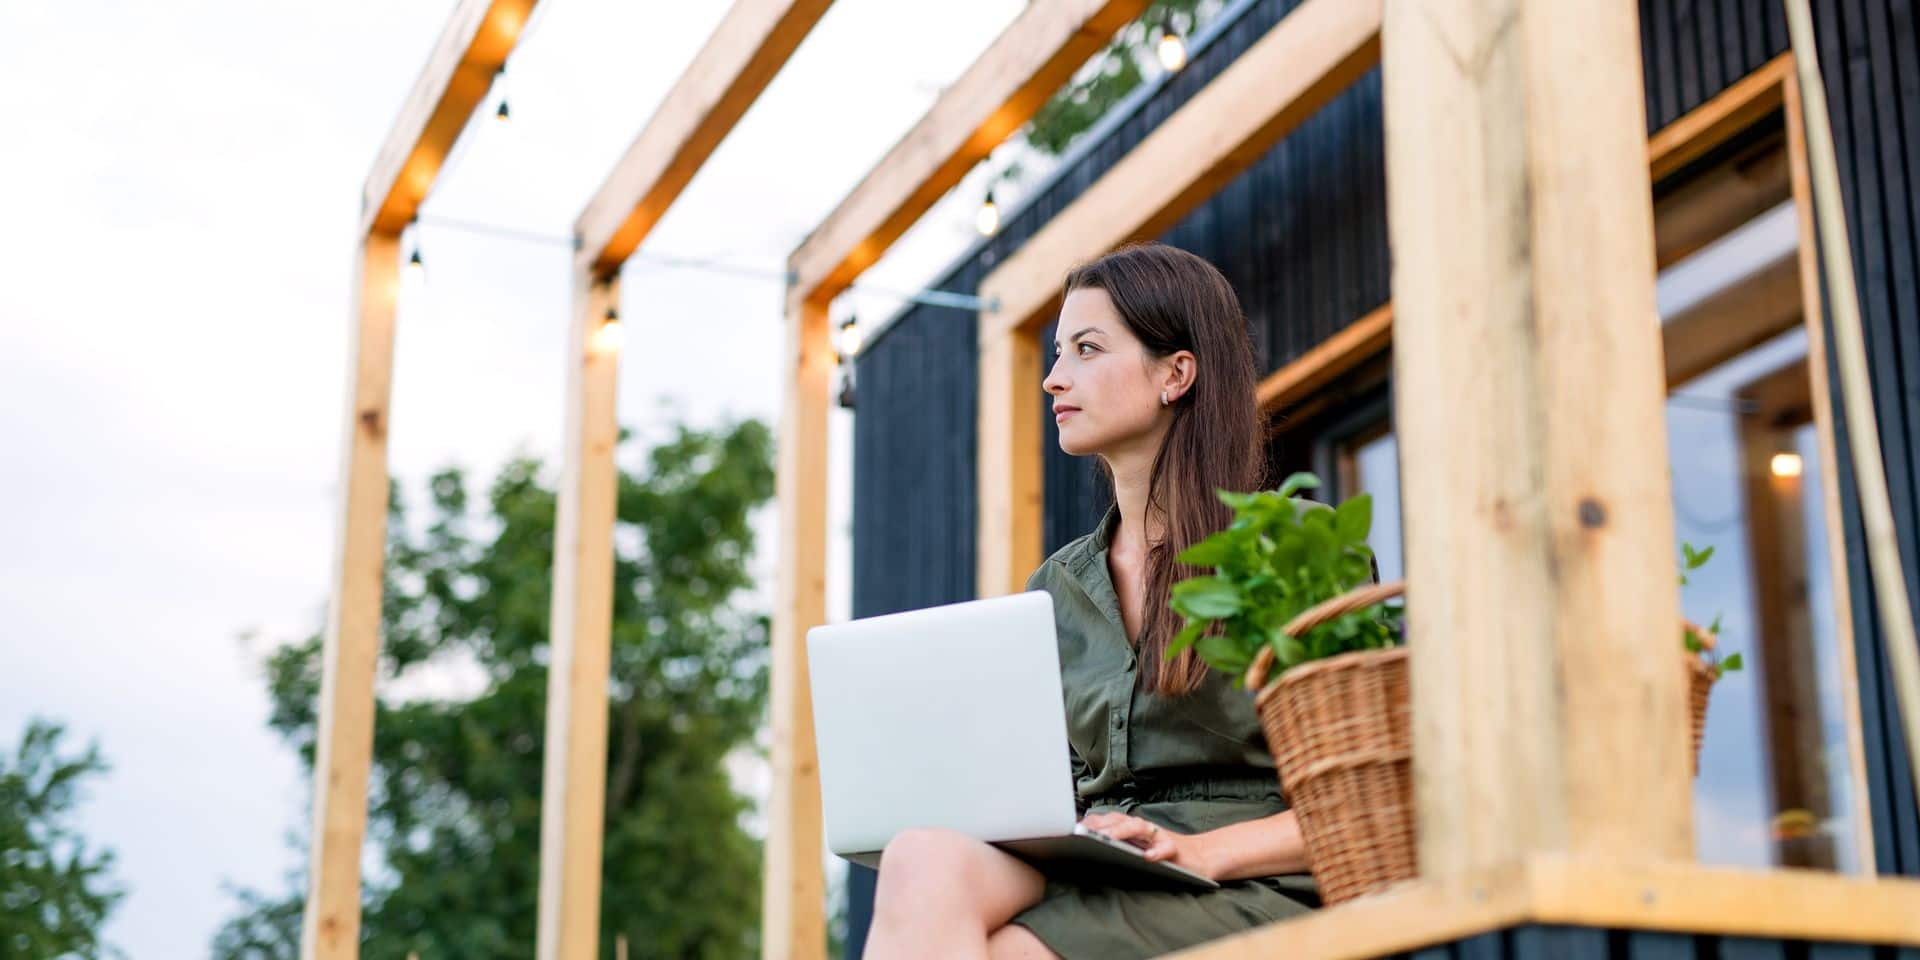 Young,Woman,With,Laptop,Outdoors,,Weekend,Away,In,Container,House